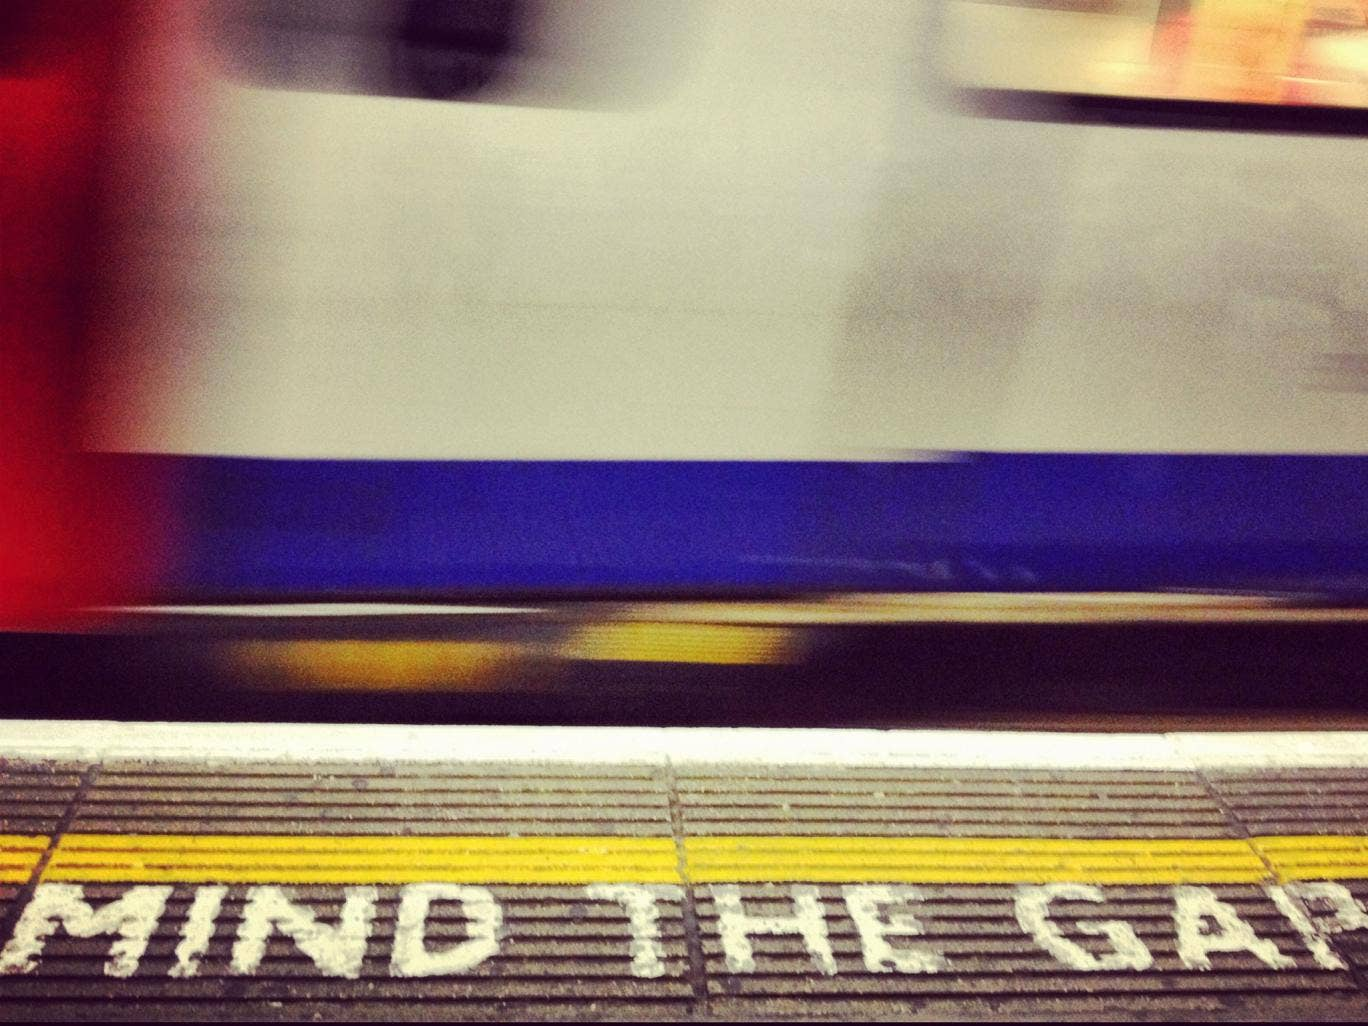 The well-known warning message on the London underground